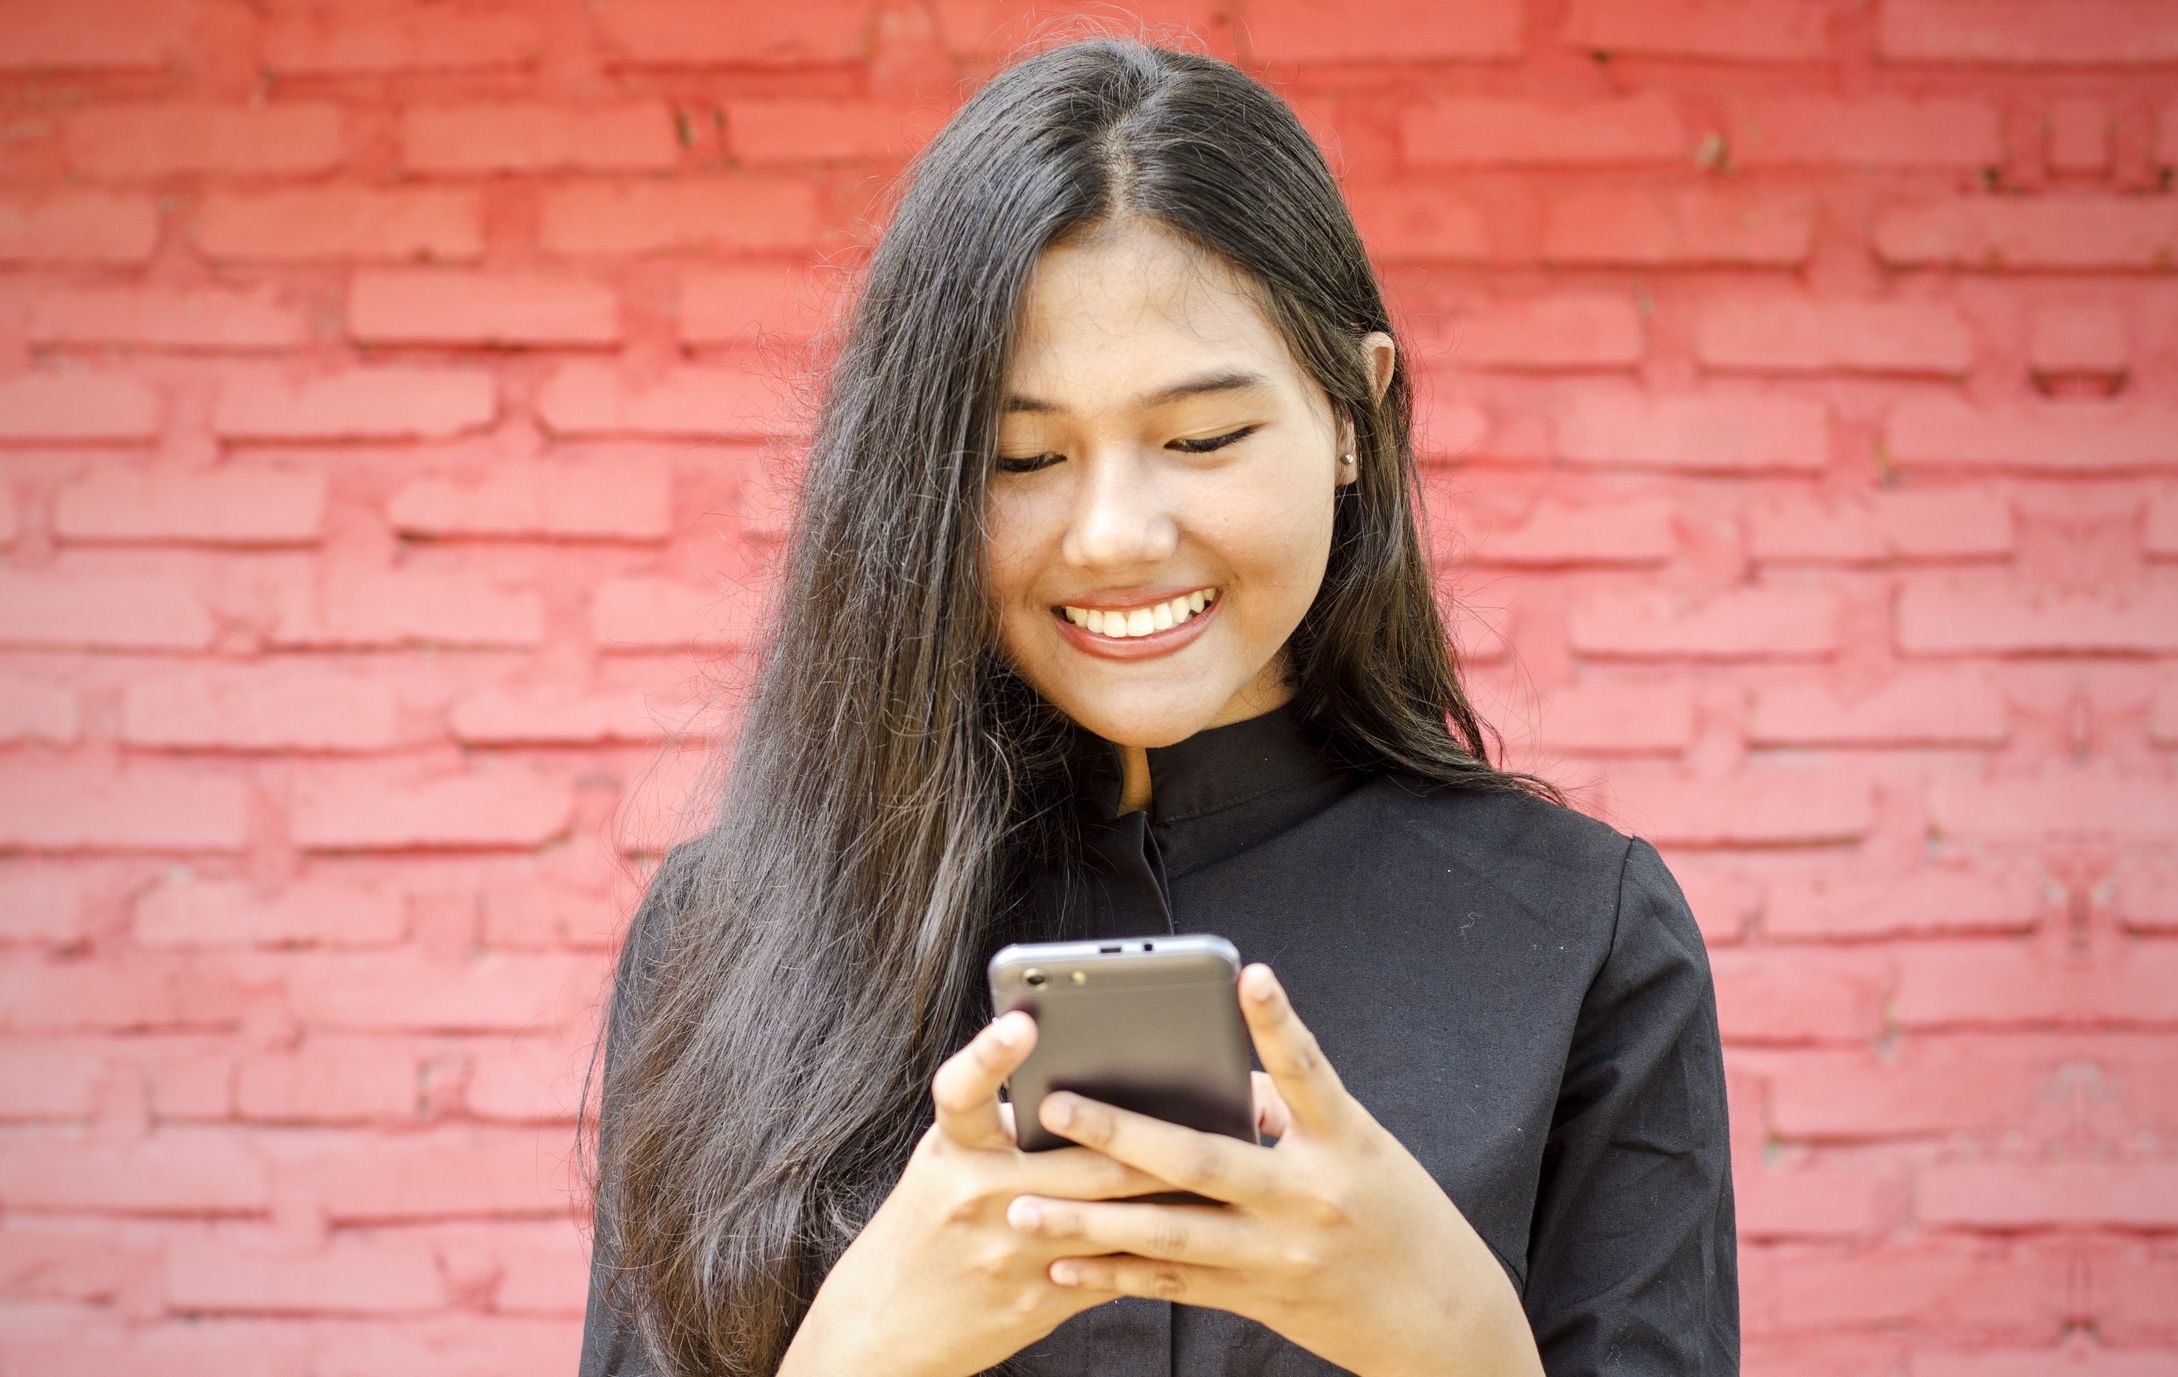 Top dating apps like tinder for teens